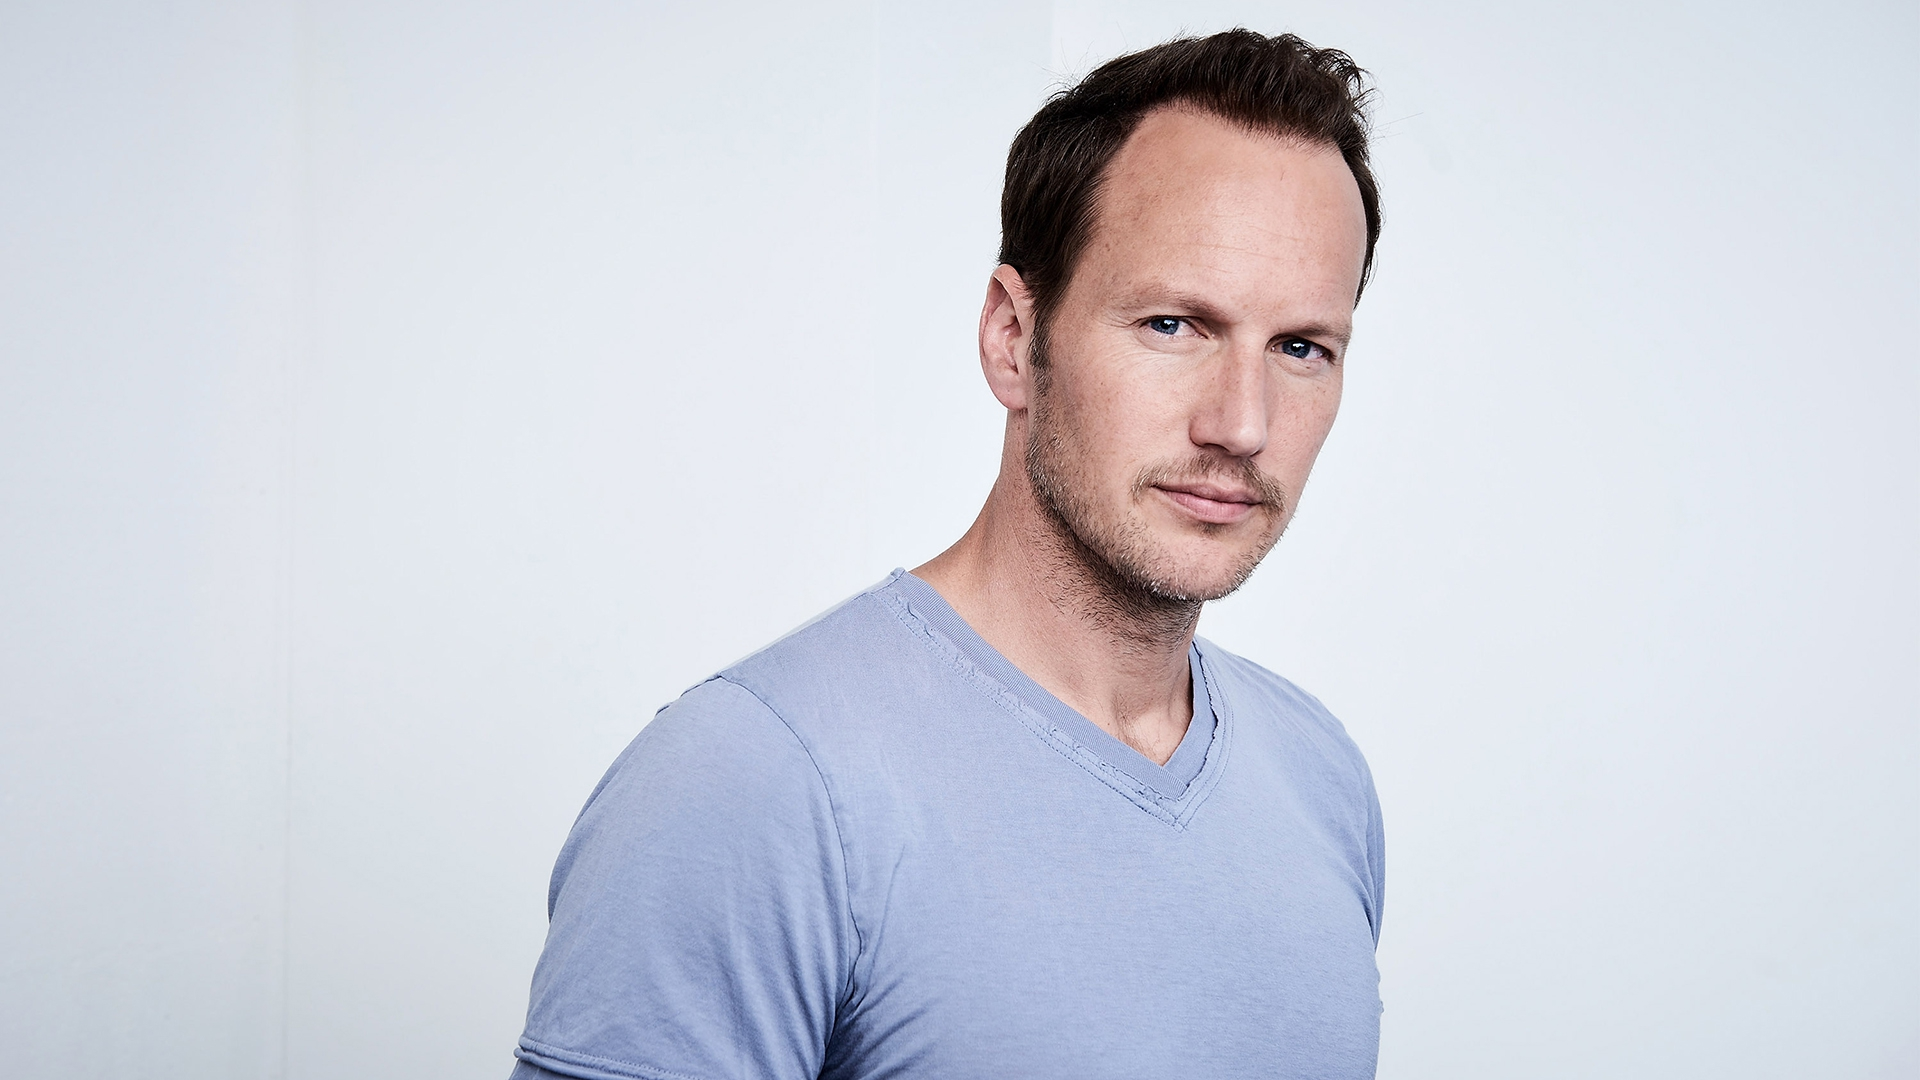 Patrick Wilson Salary, Affairs, Spouse, Height, Weight, Age, & Other Secret Matters.